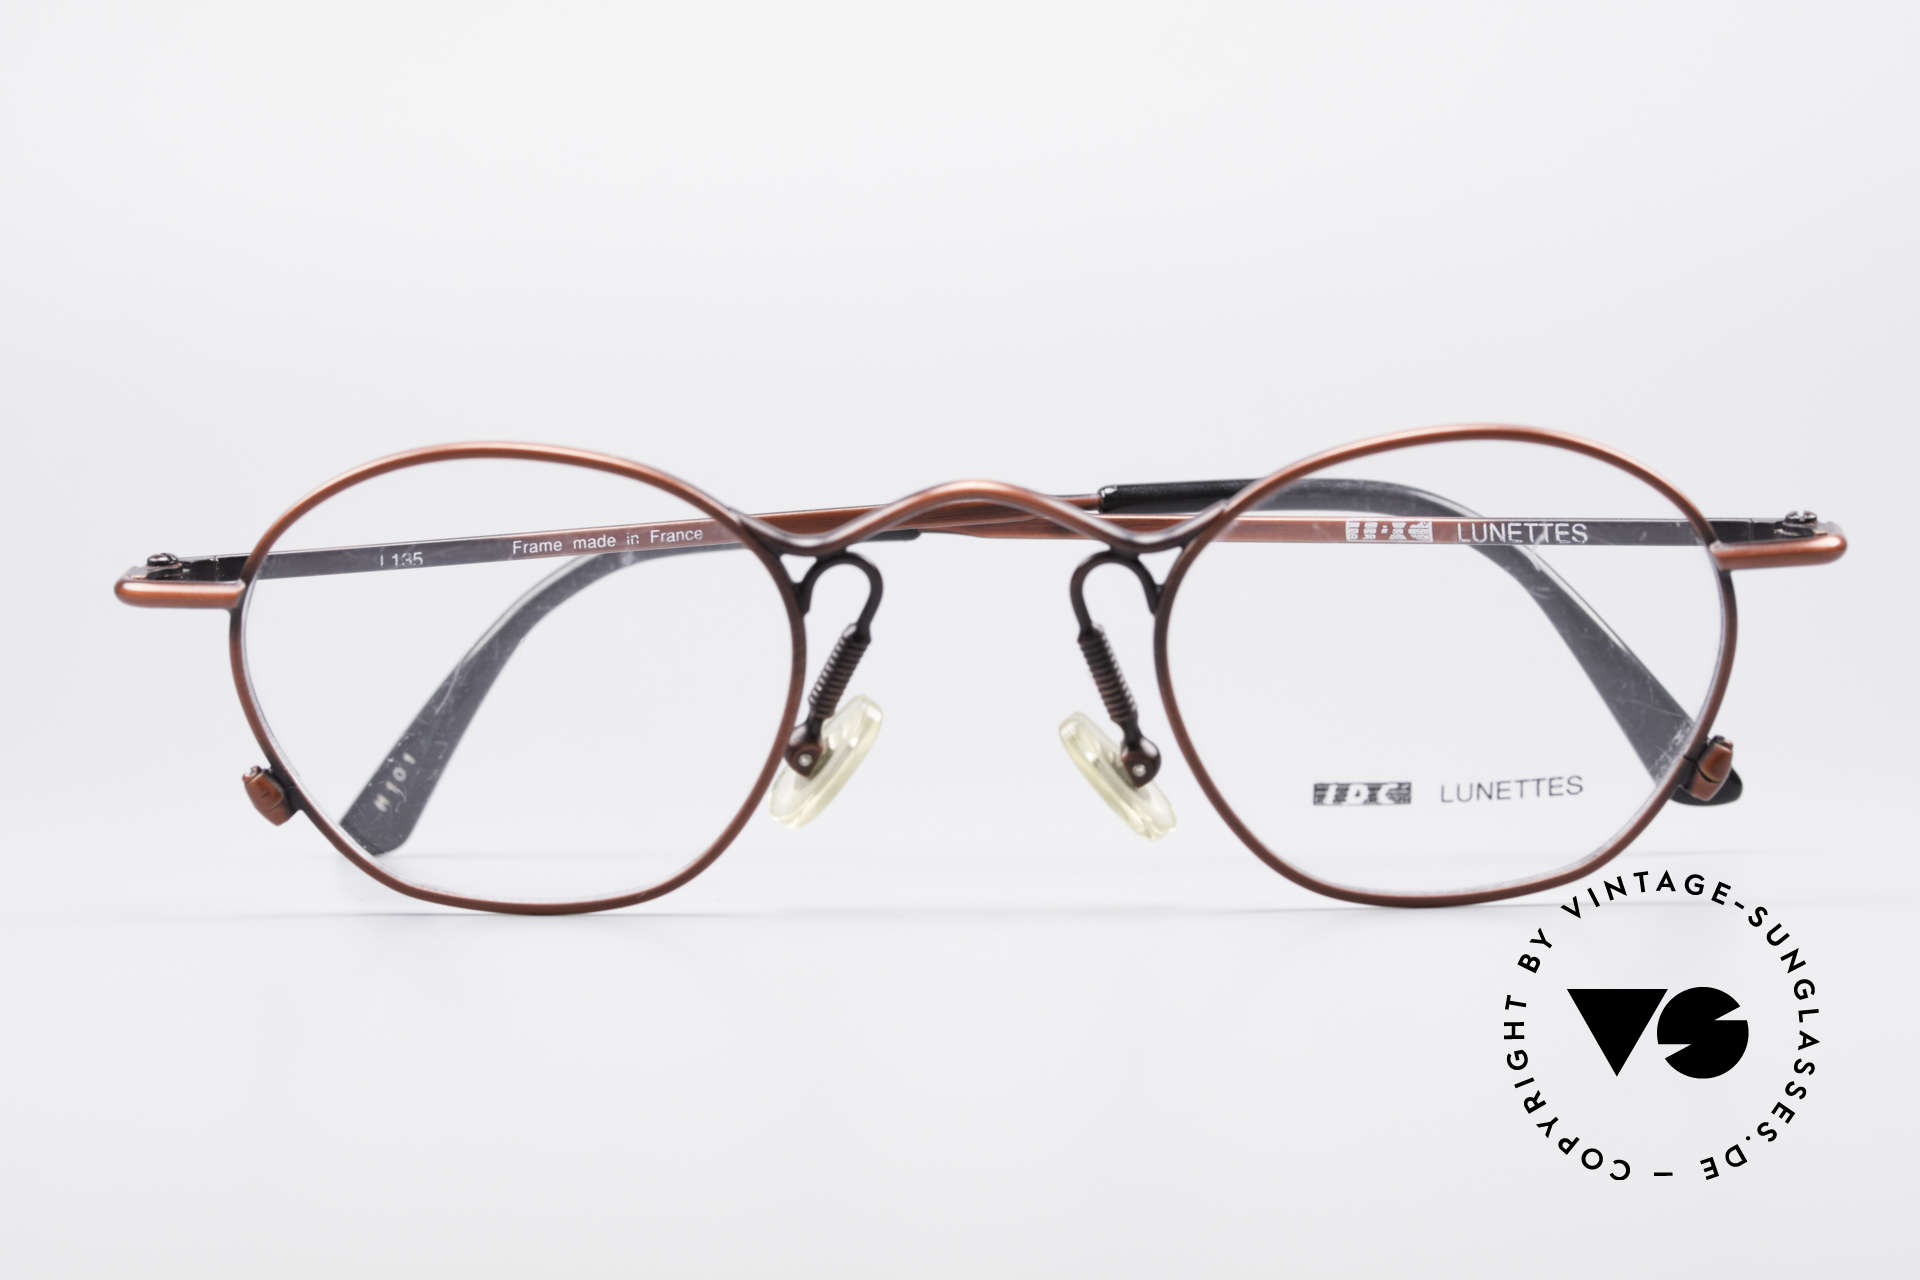 IDC 101 True Vintage No Retro Glasses, Size: small, Made for Men and Women